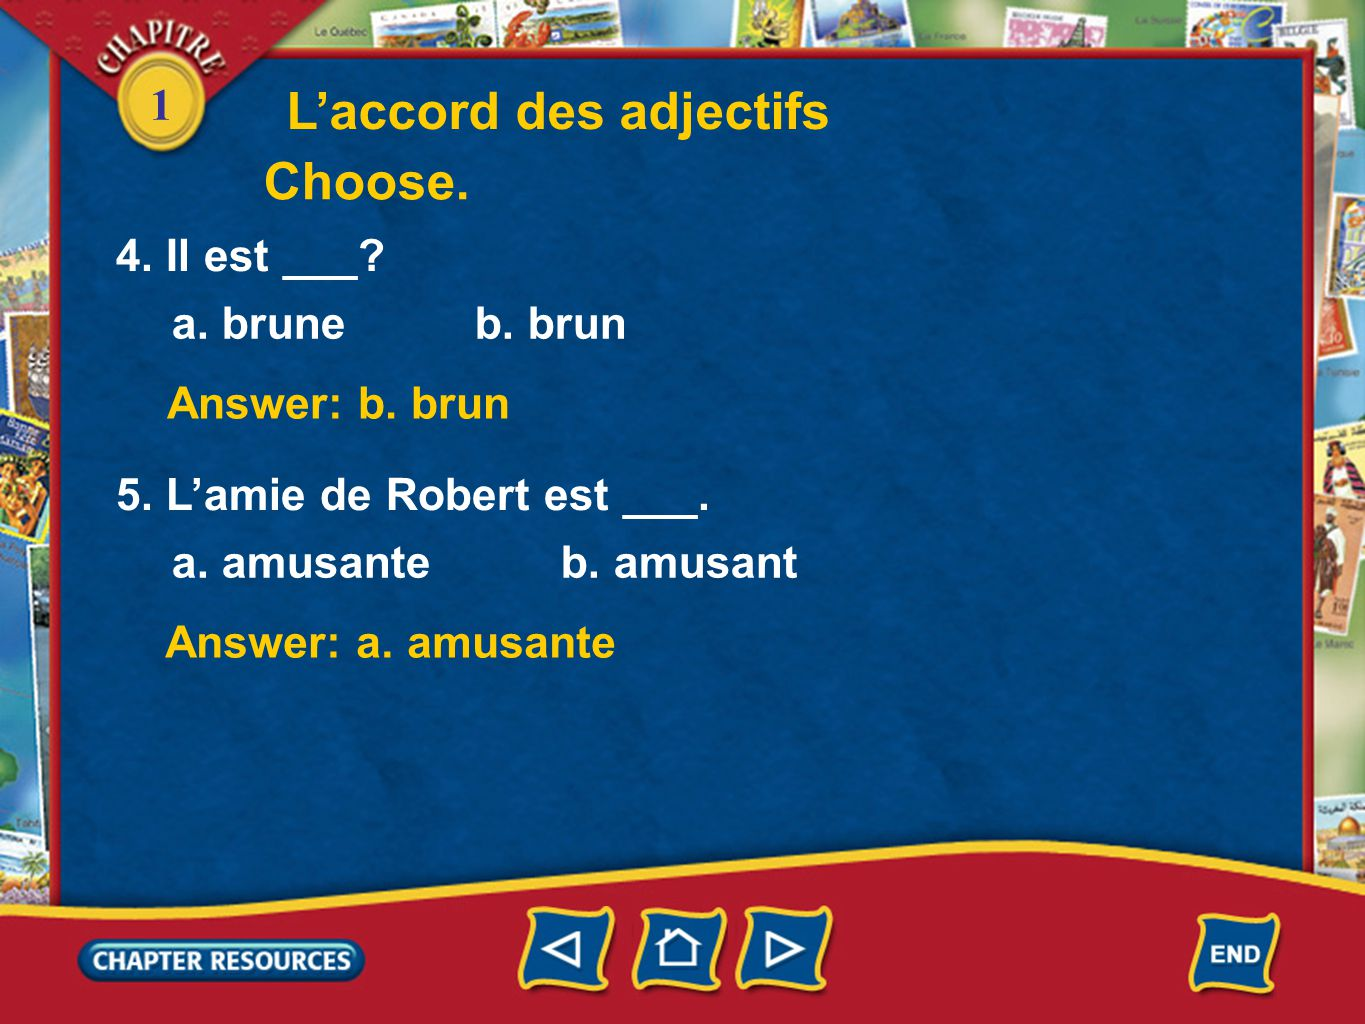 L'accord des adjectifs Choose.